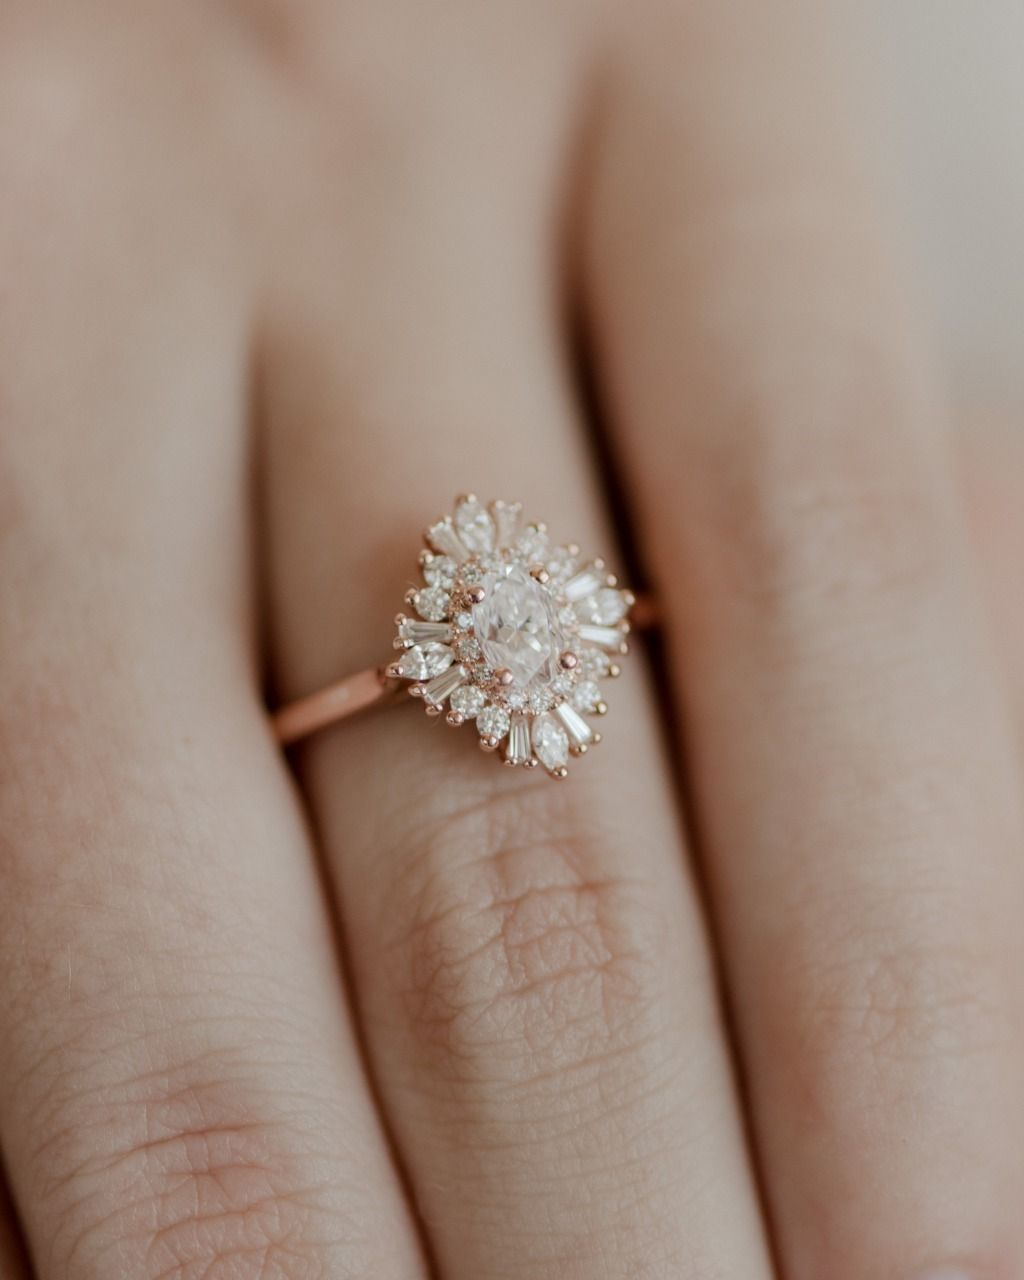 Unique Vintage Style Engagement Ring From Evorden Wcvendor Diamonds Engaged Vintage Style Engagement Rings Wedding Rings Vintage Wedding Rings Simple